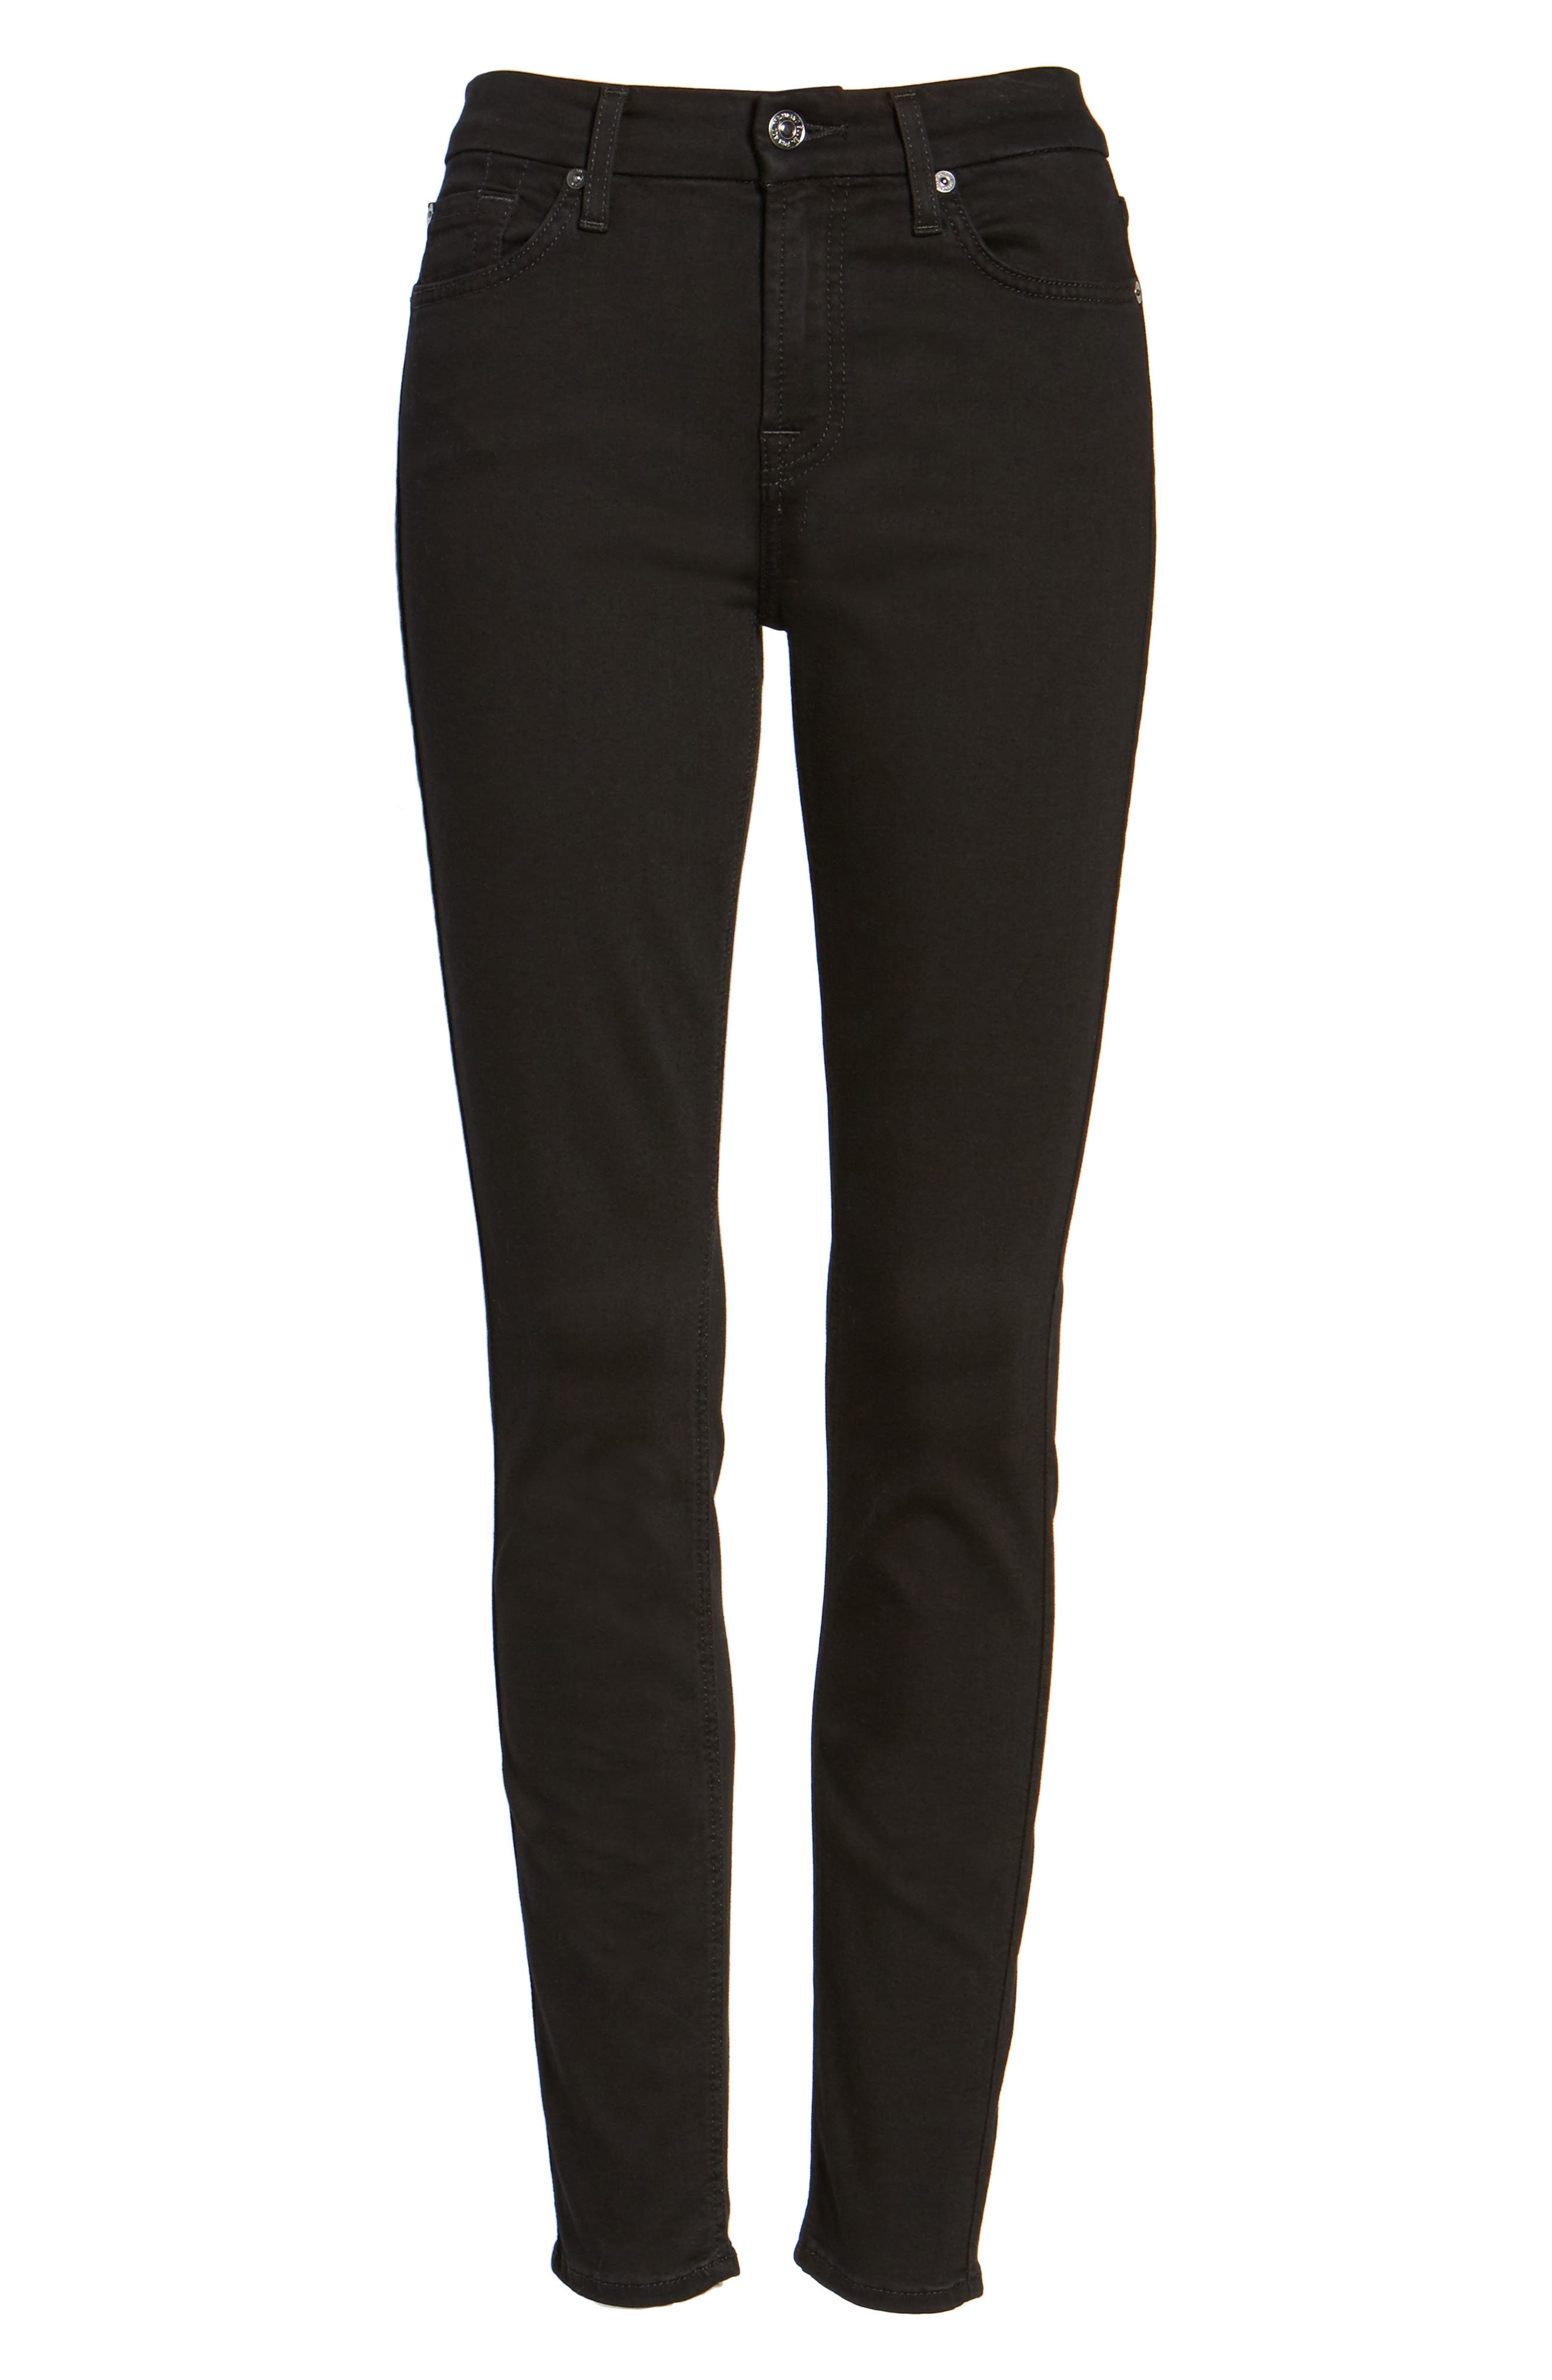 b(air) Ankle Skinny Jeans,                             Alternate thumbnail 2, color,                             004